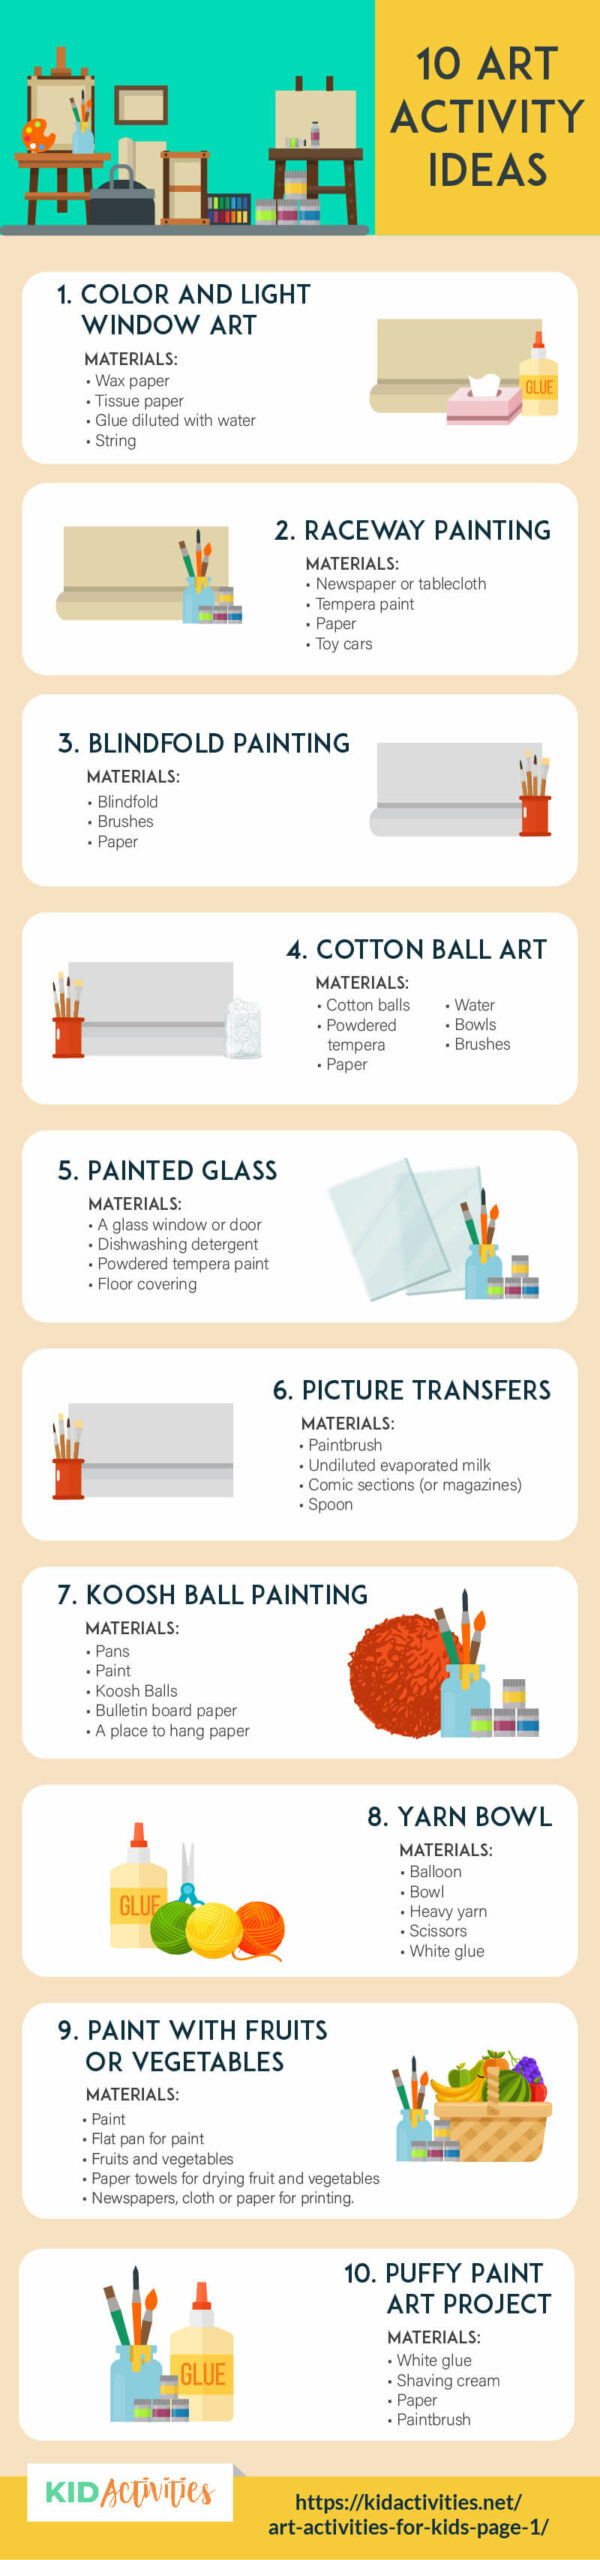 An animated infographic with 10 art activity ideas for young kids. Great for preschool and elementary ages. The 10 activities are listed within the post